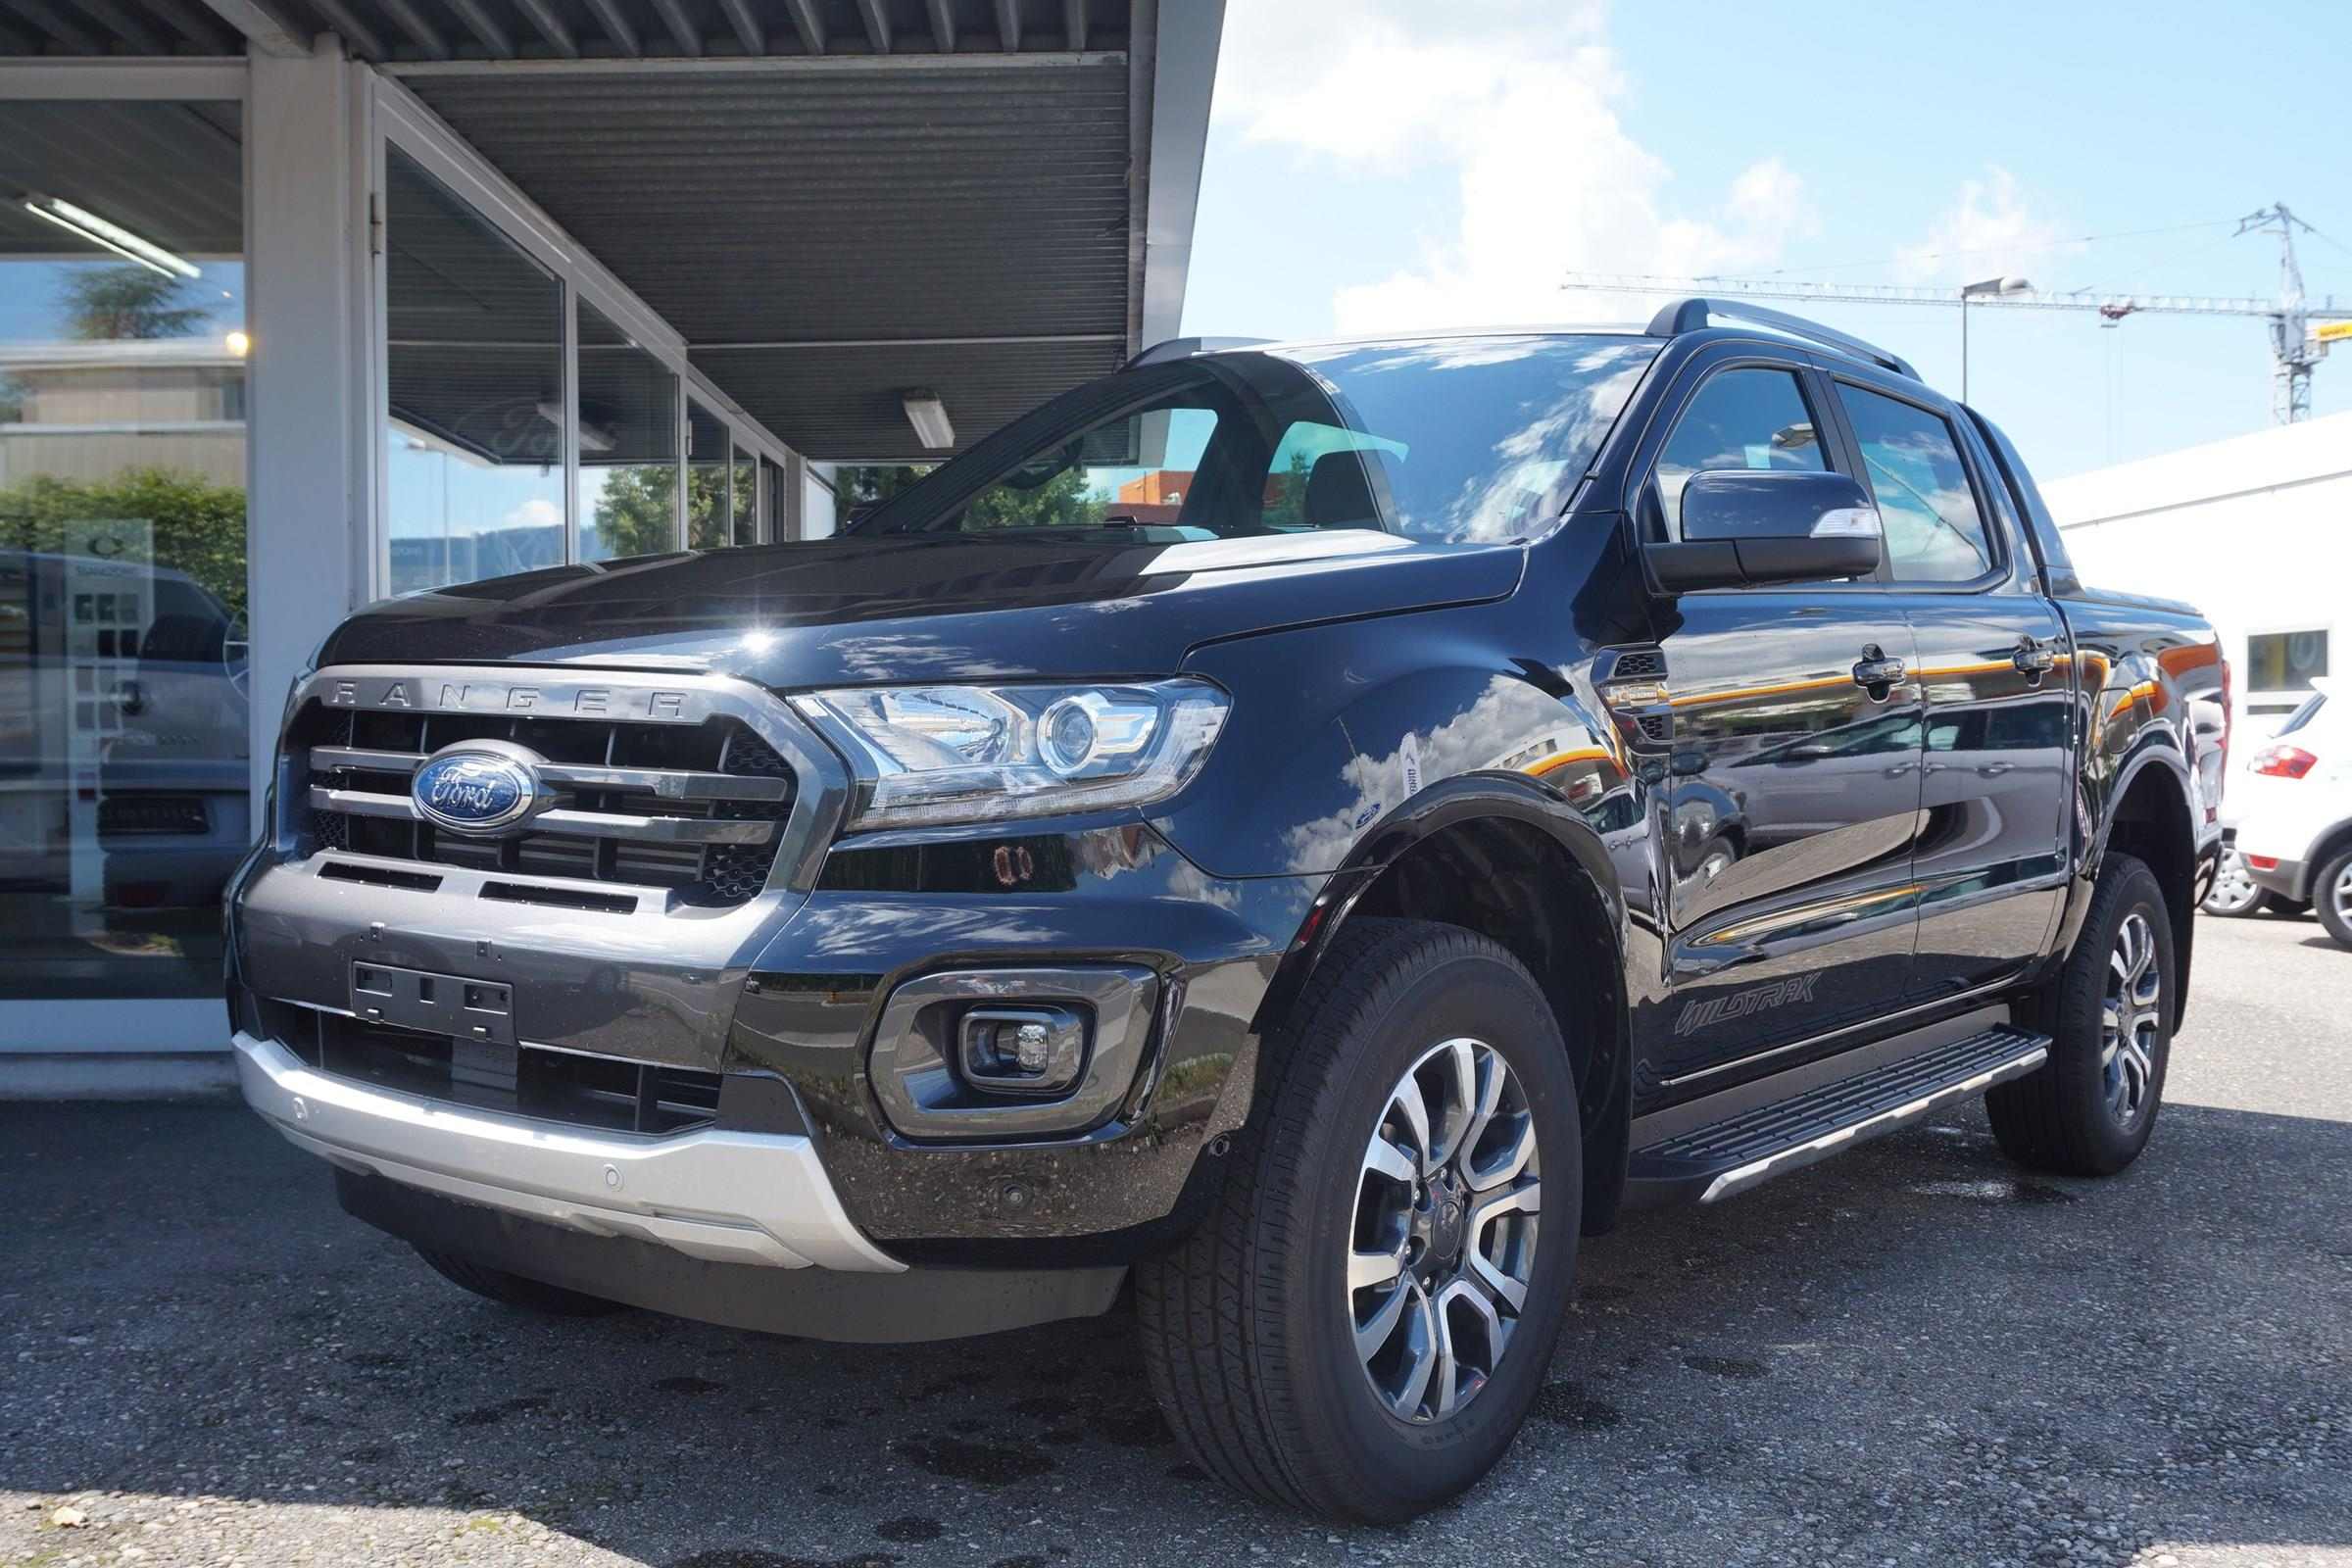 2019 FORD RANGER Ranger Wildtrack 2.0 Eco Blue 4x4 A